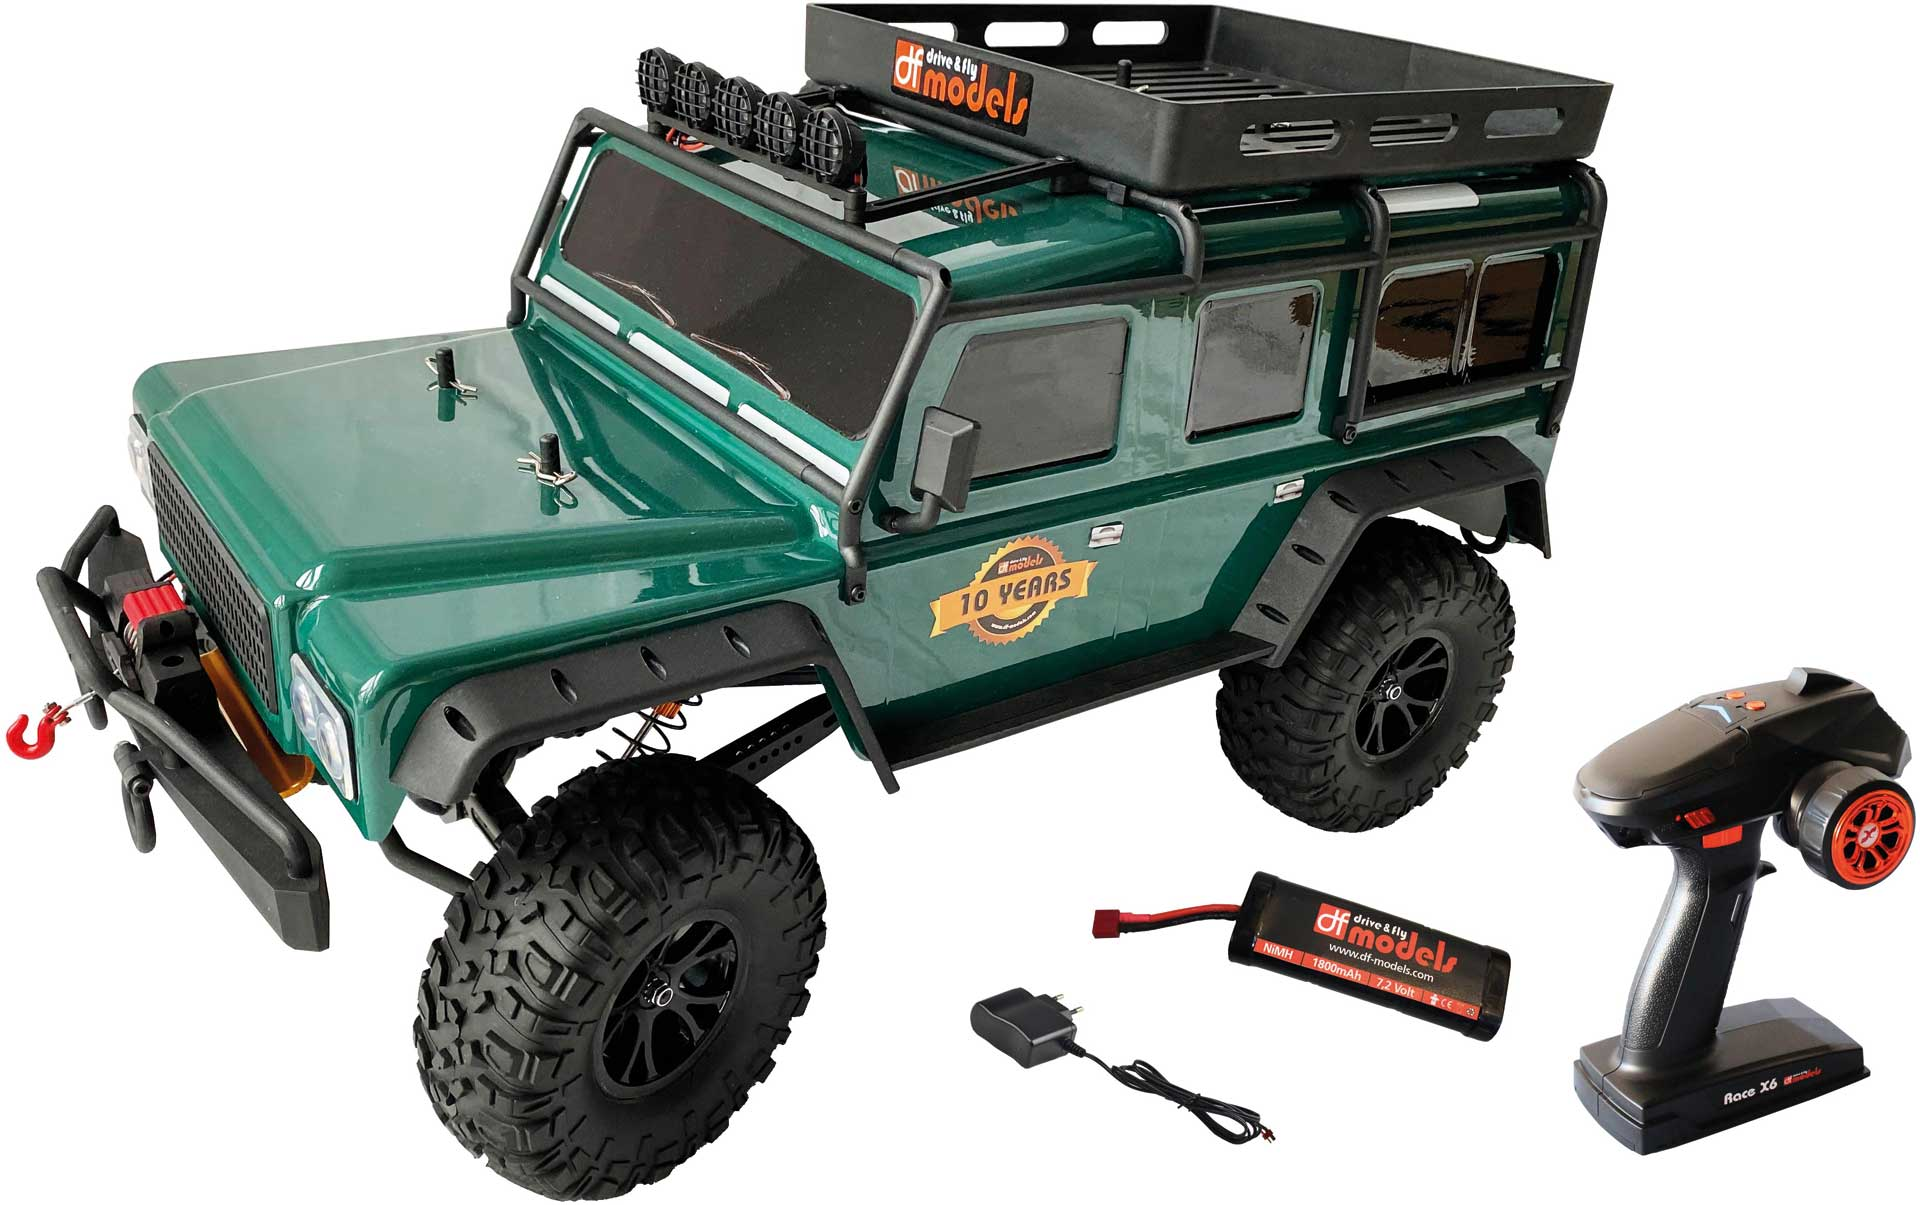 DRIVE & FLY MODELS DF-4J Crawler XXL 10 Years Edition II (2021) GREEN